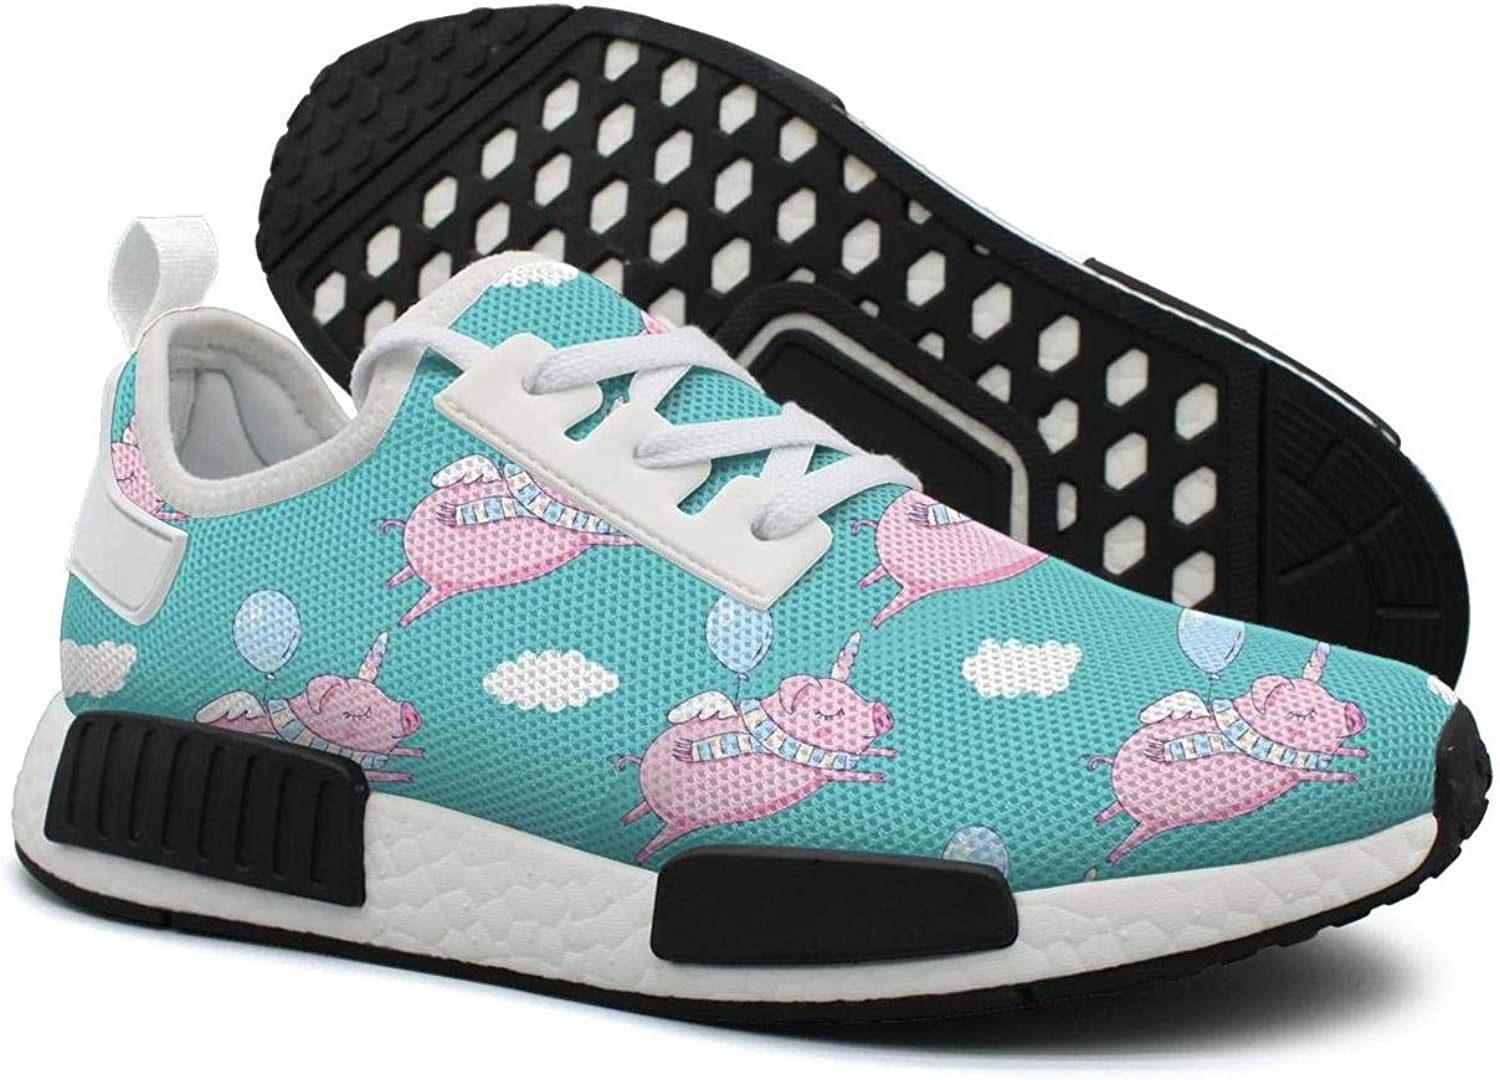 Pduiqo Cute Lazy Pig Sleeping in The Cloud As Pegasus Women's neon Lightweight Volleyball Sneakers Gym Outdoor Running shoes